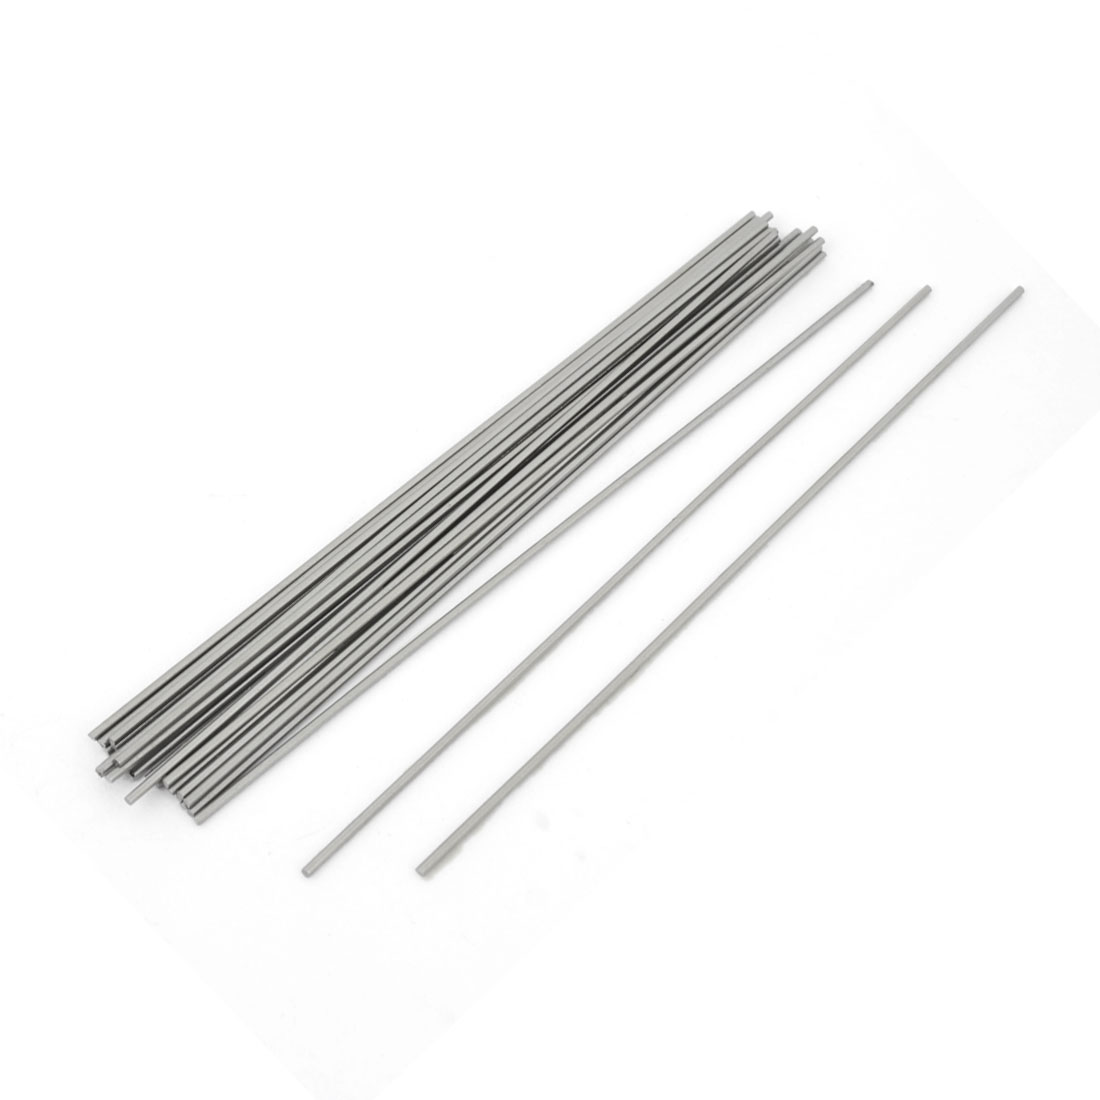 50Pcs High Speed Steel Round Turning Lathe Carbide Bars 1mm x 100mm